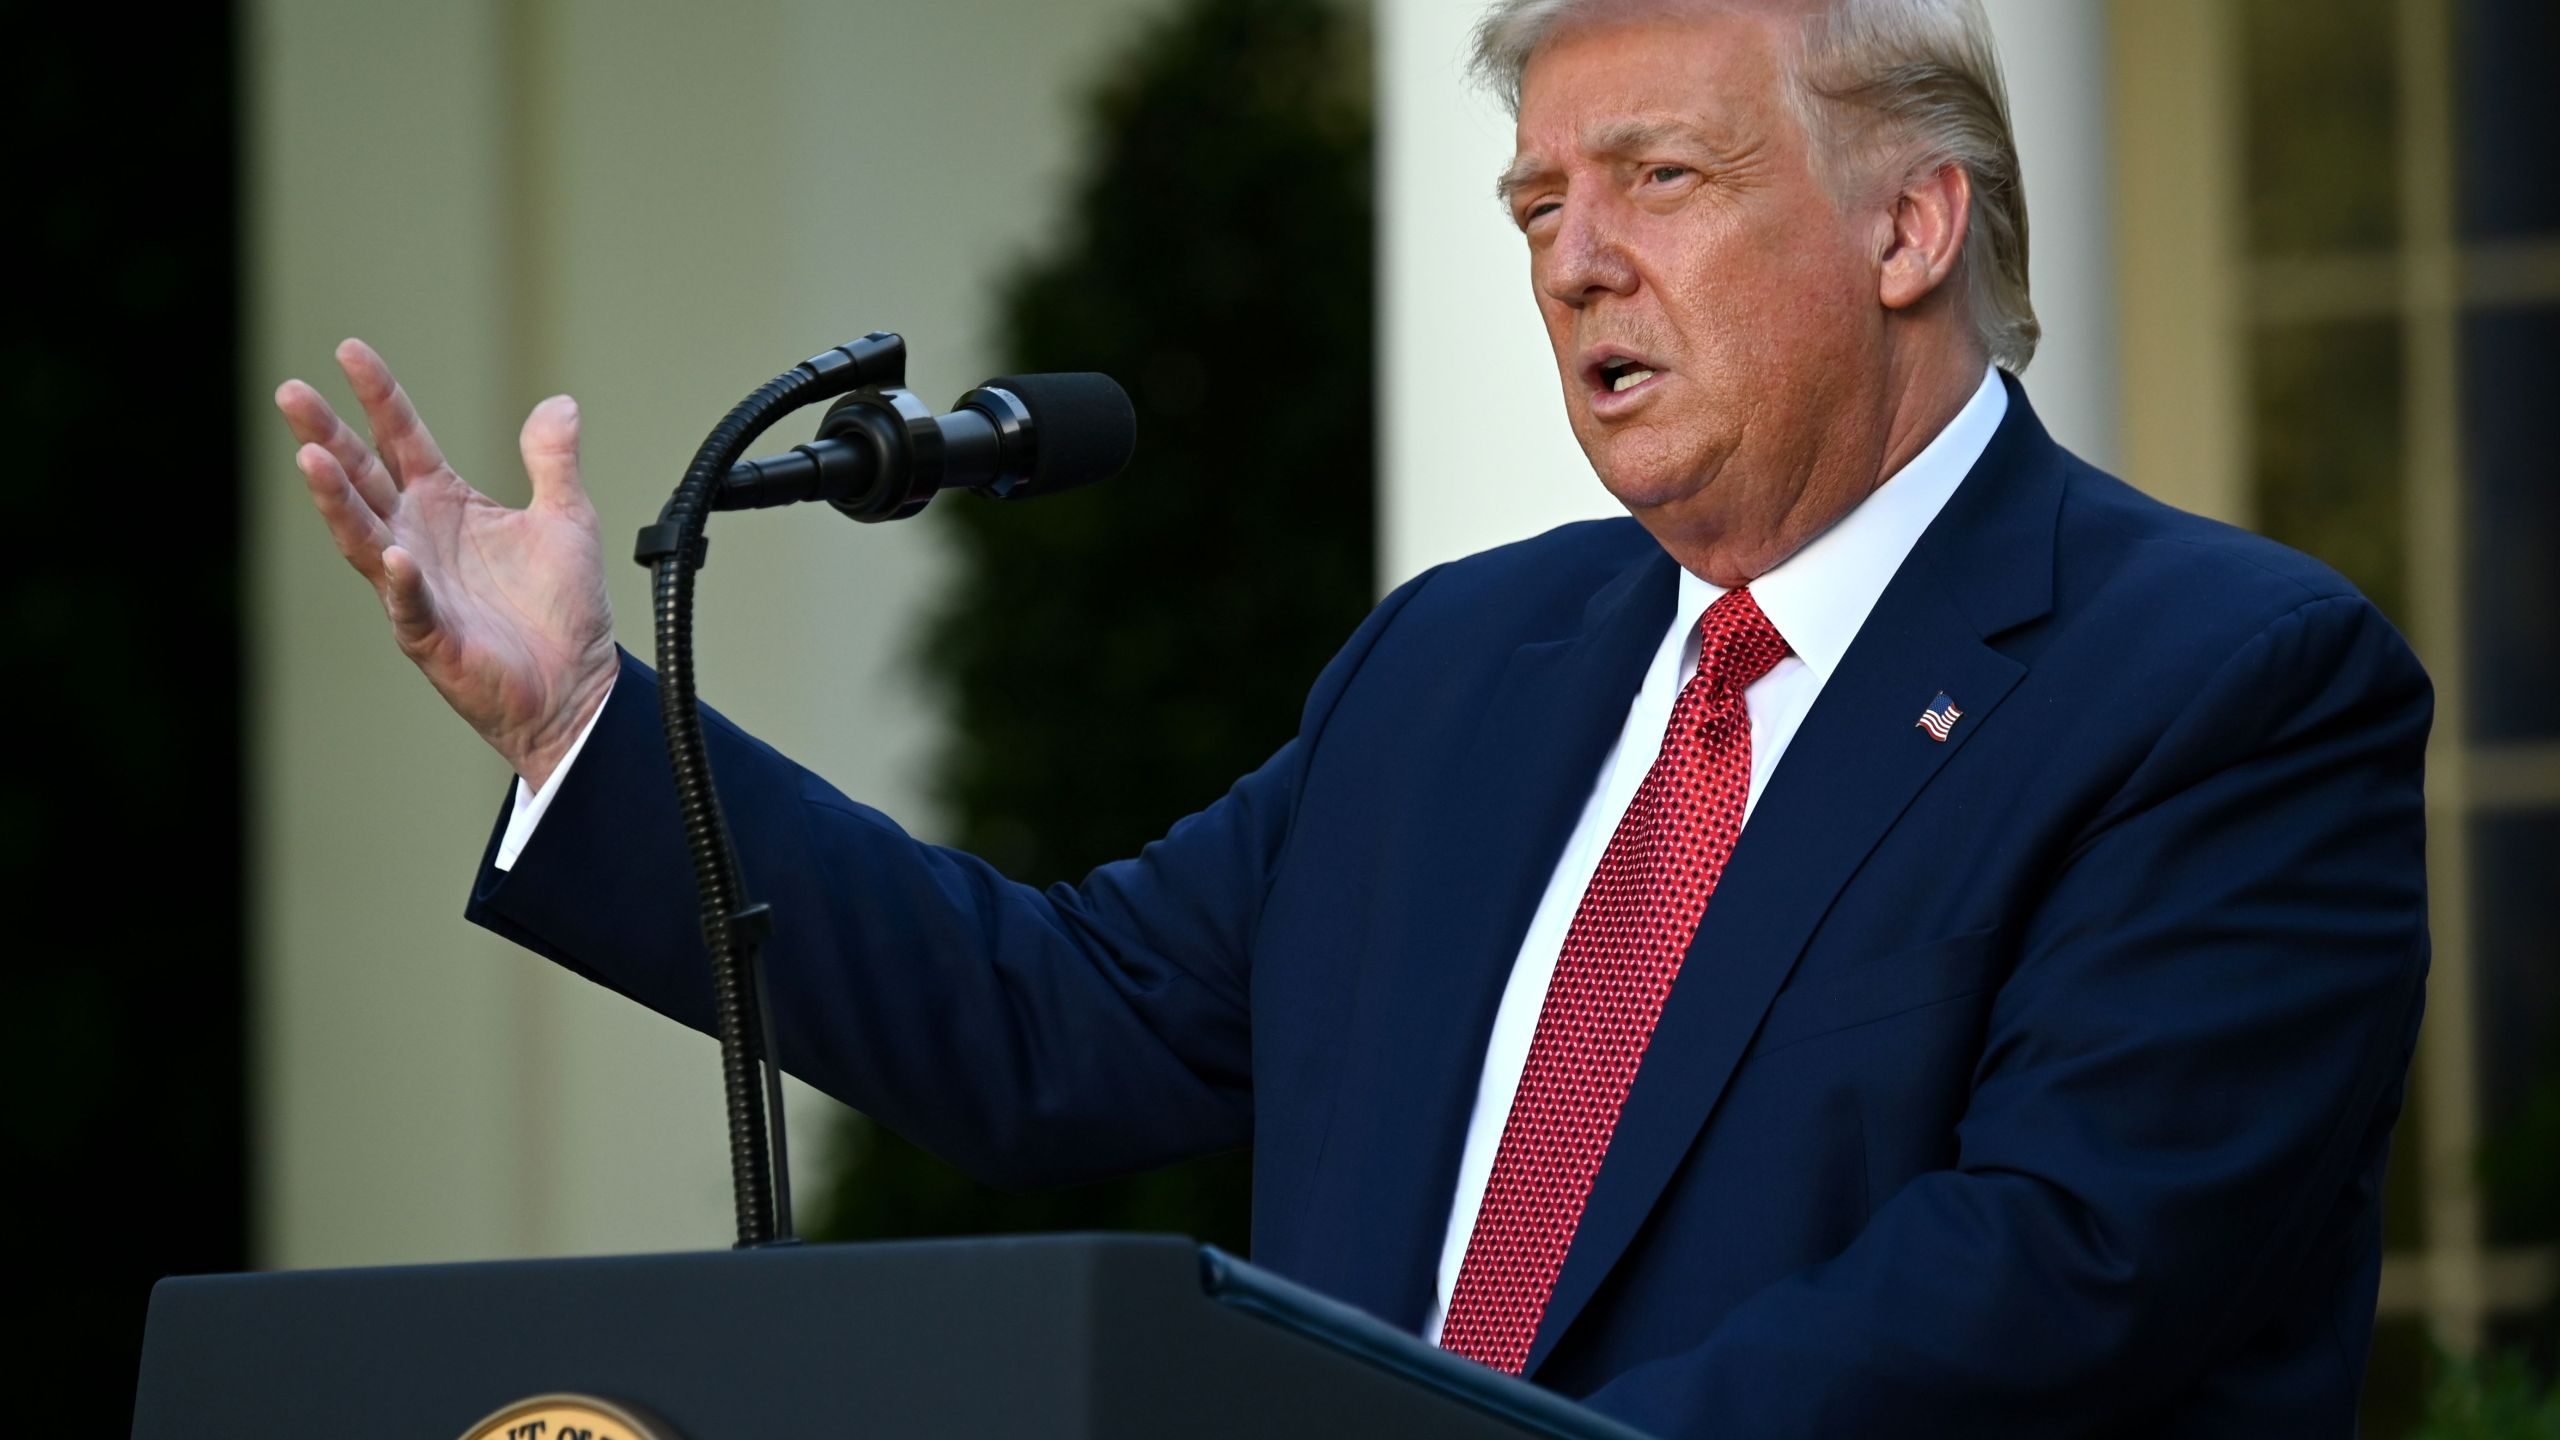 Donald Trump delivers a press conference in the Rose Garden of the White House on July 14, 2020. (JIM WATSON/ Getty Images)